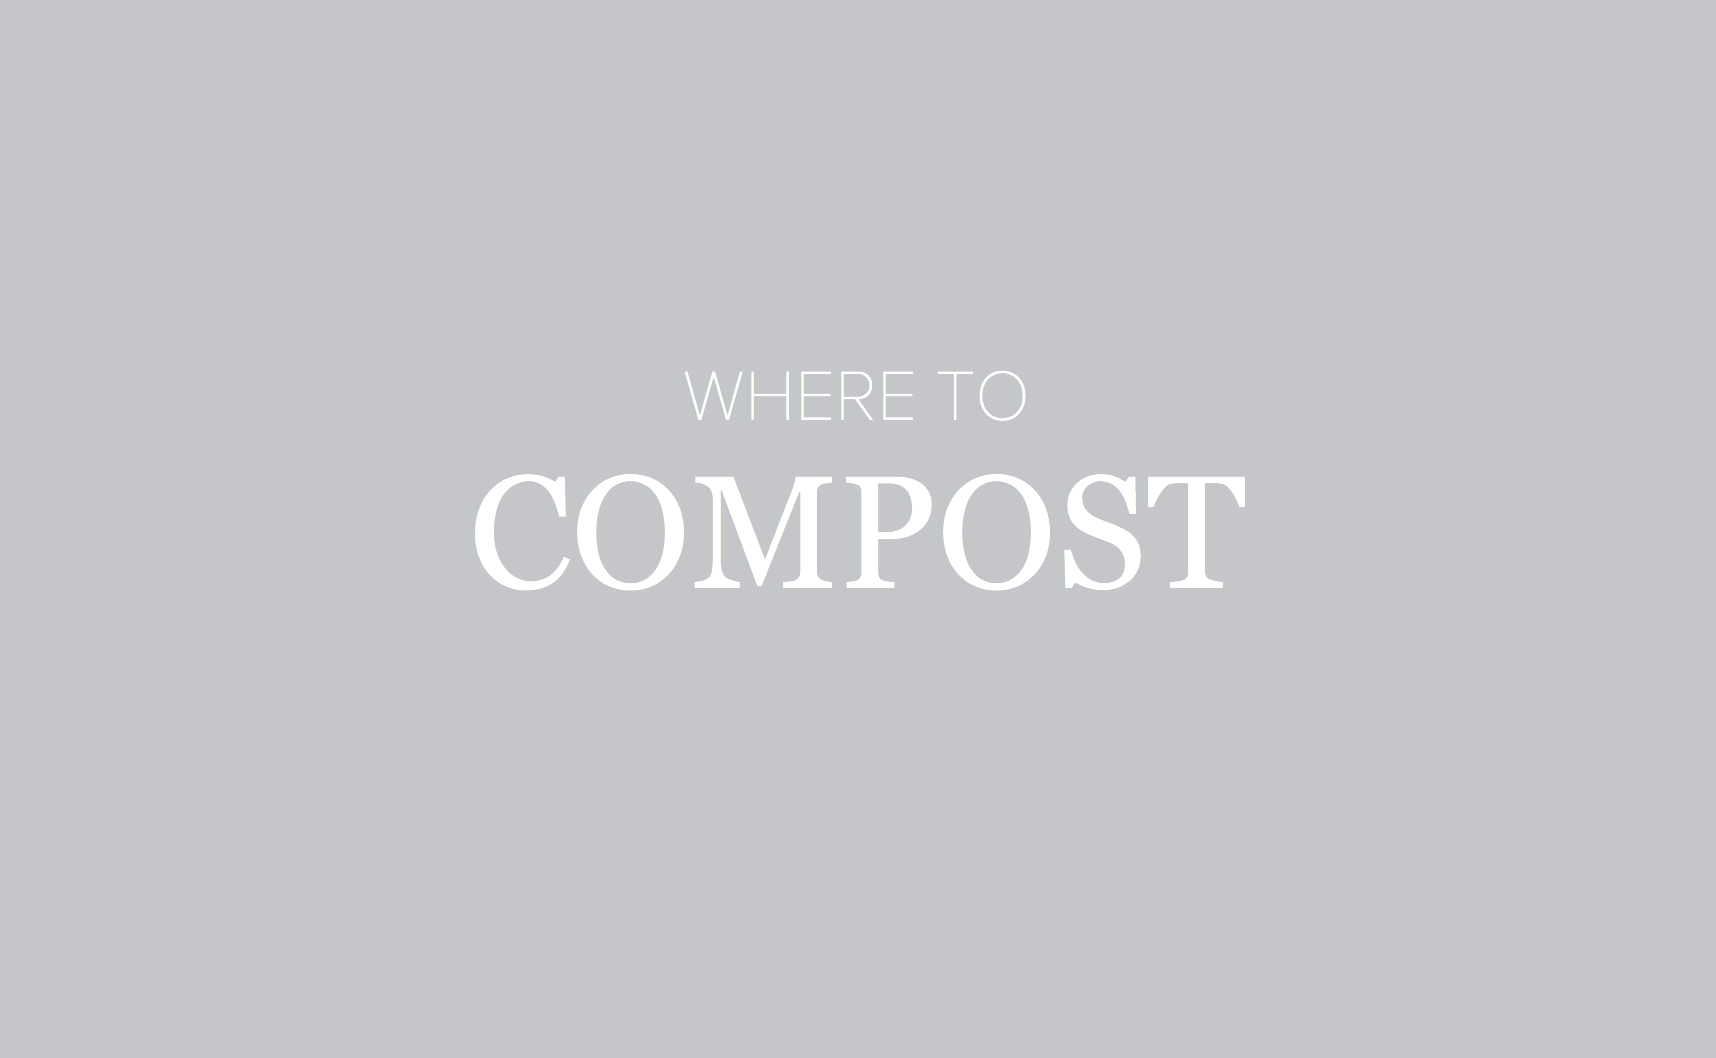 Where to compost in New York: a state-by-state guide to staying zero waste | Litterless